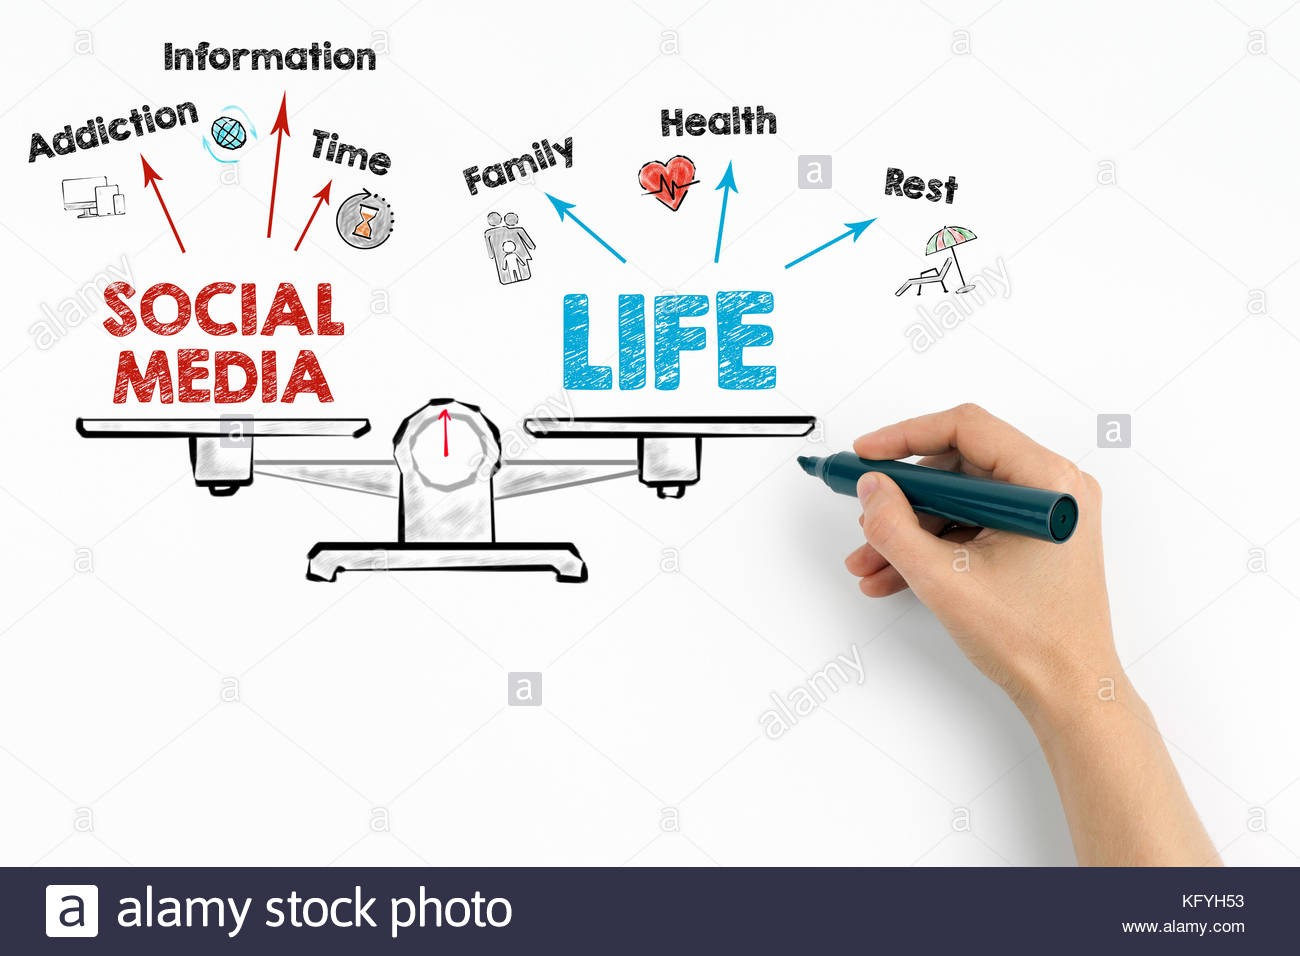 Is Social Media Good for our Health